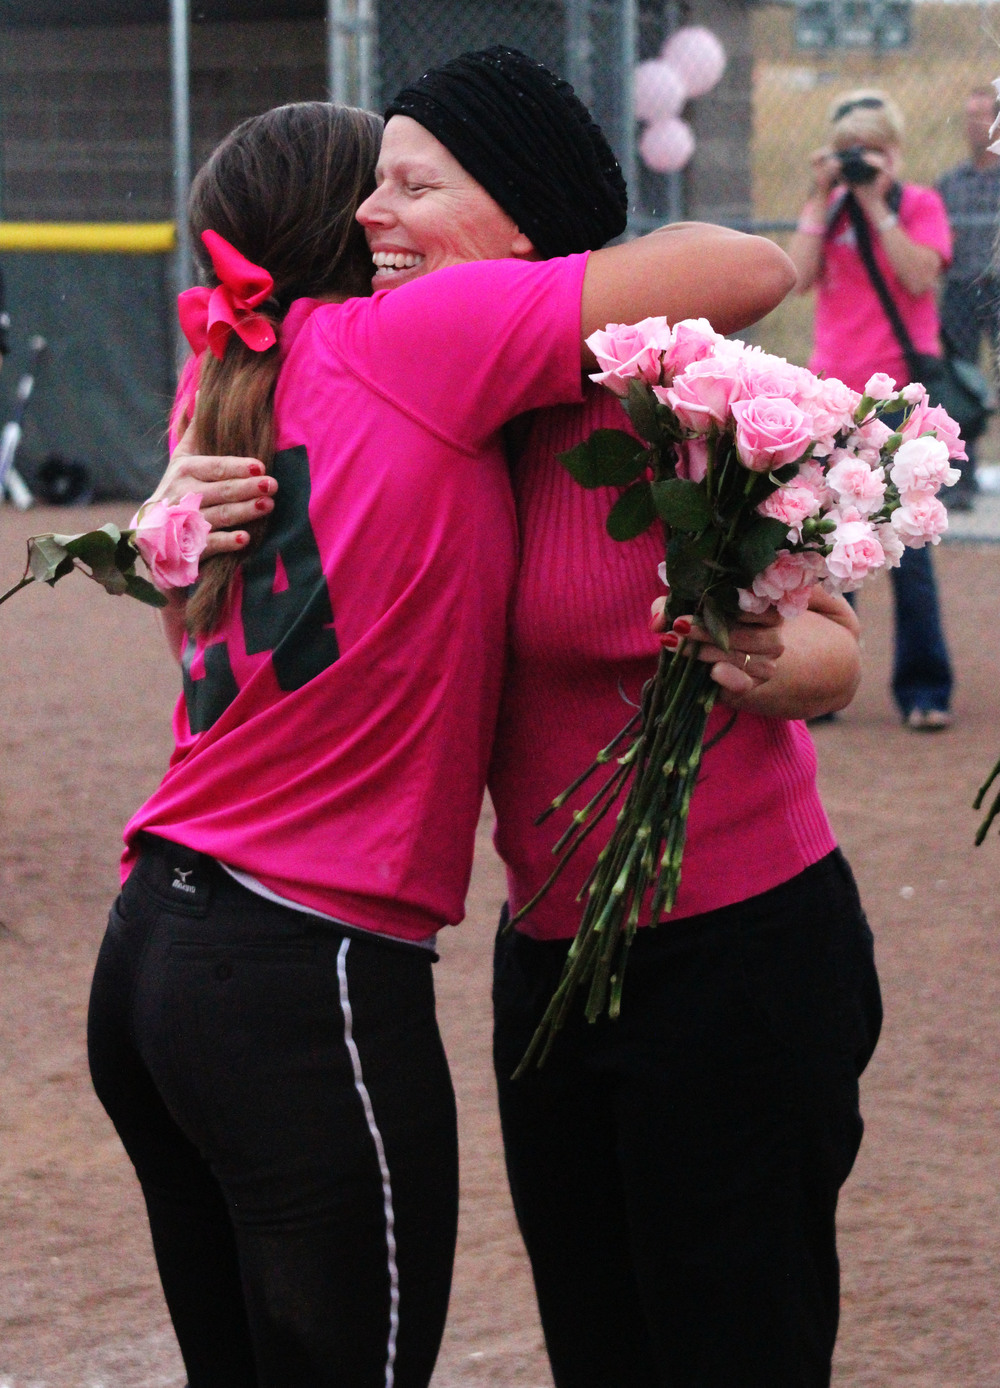 Senior Kayla Lewis embraces Susan Cash following Vista softball's pink game.